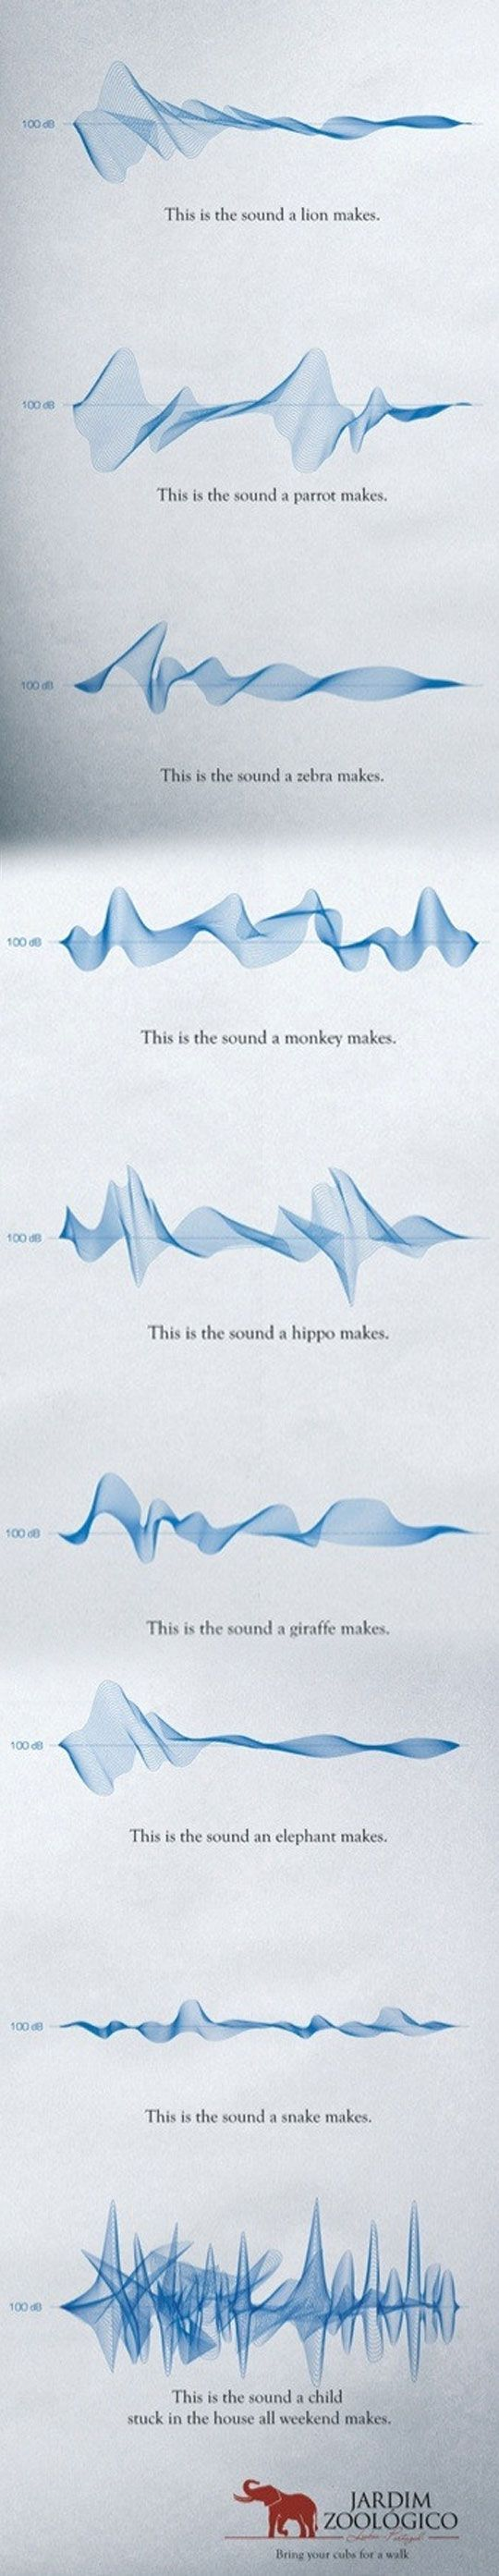 This is the sound a ......makes | ScienceDump